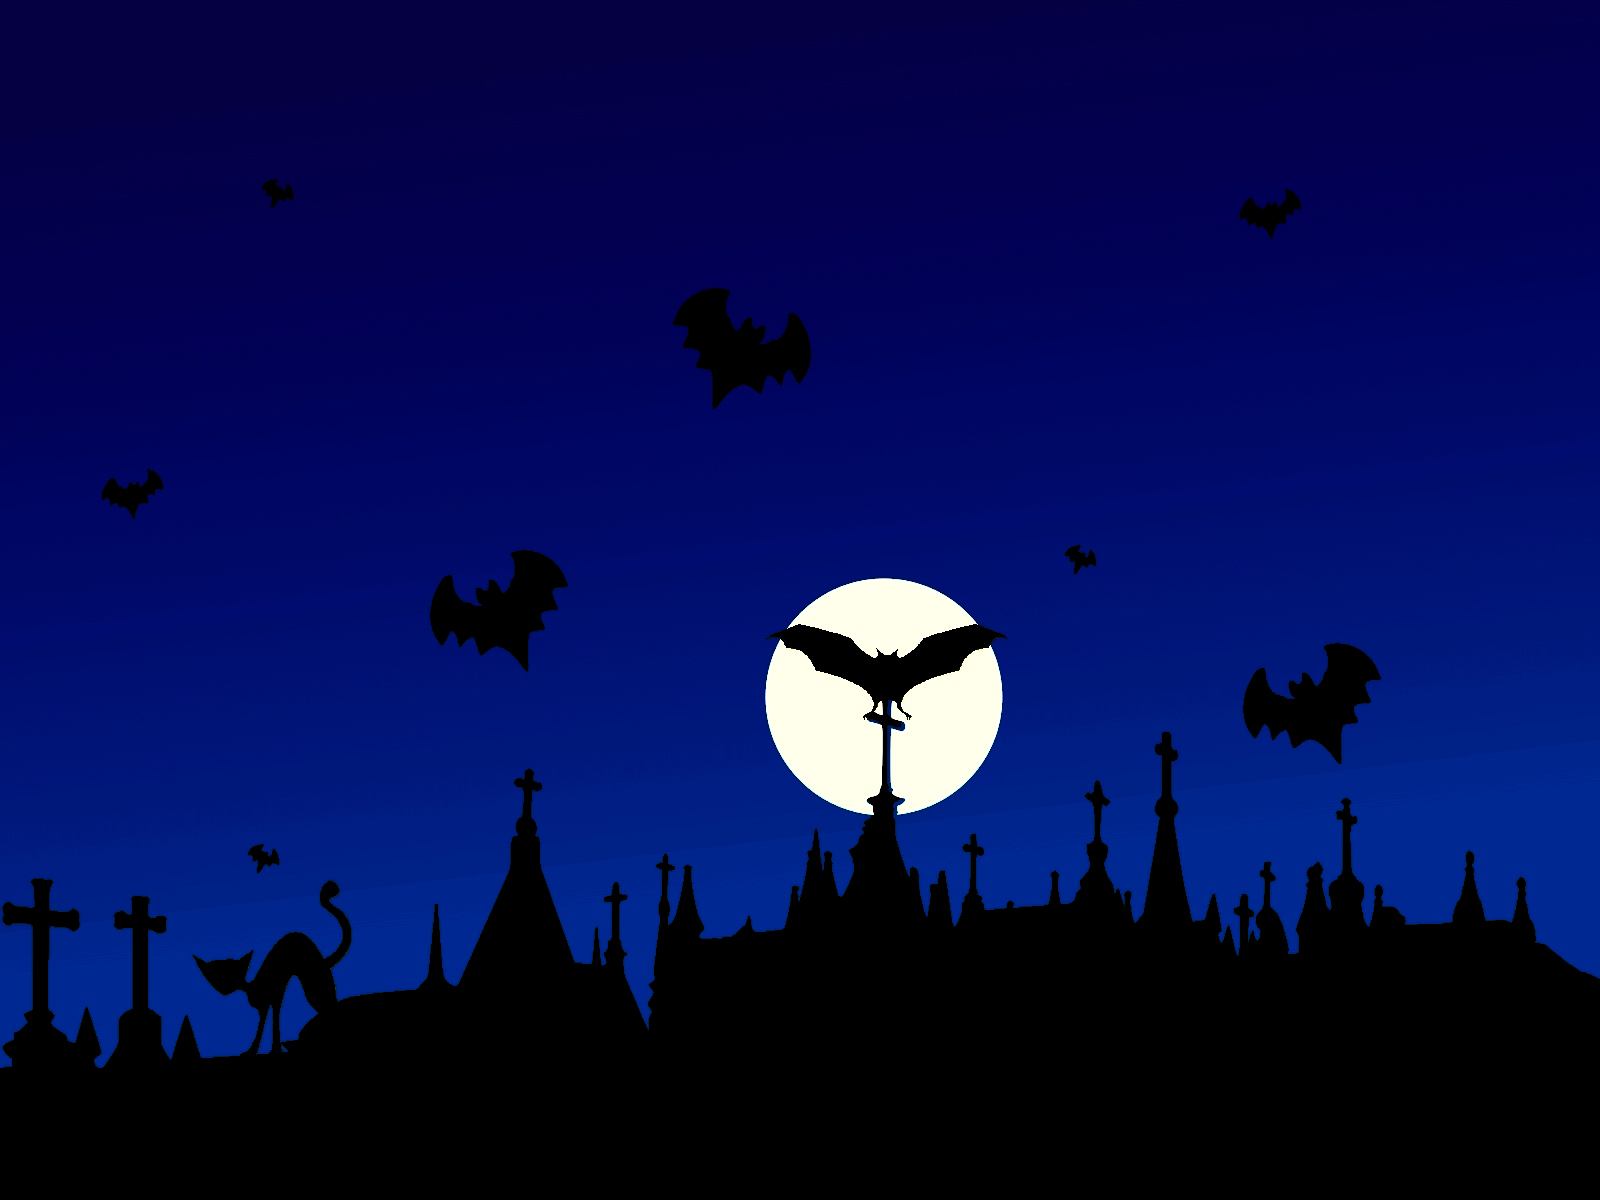 halloween moon wallpaper - photo #22